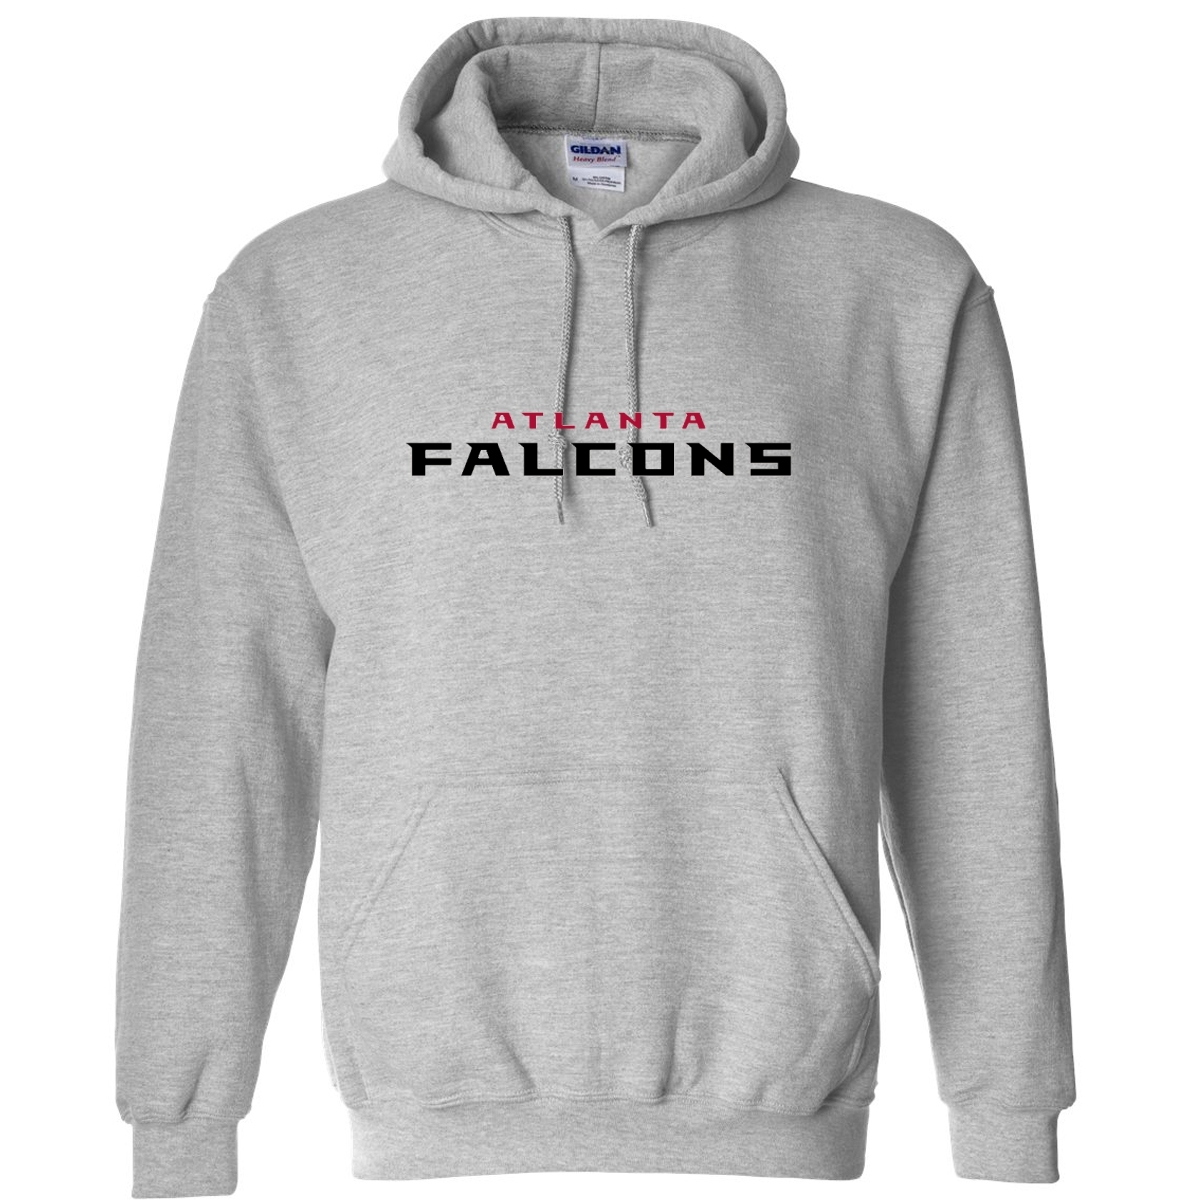 00019 FOOTBALL American football Atlanta Falcons Hoodie